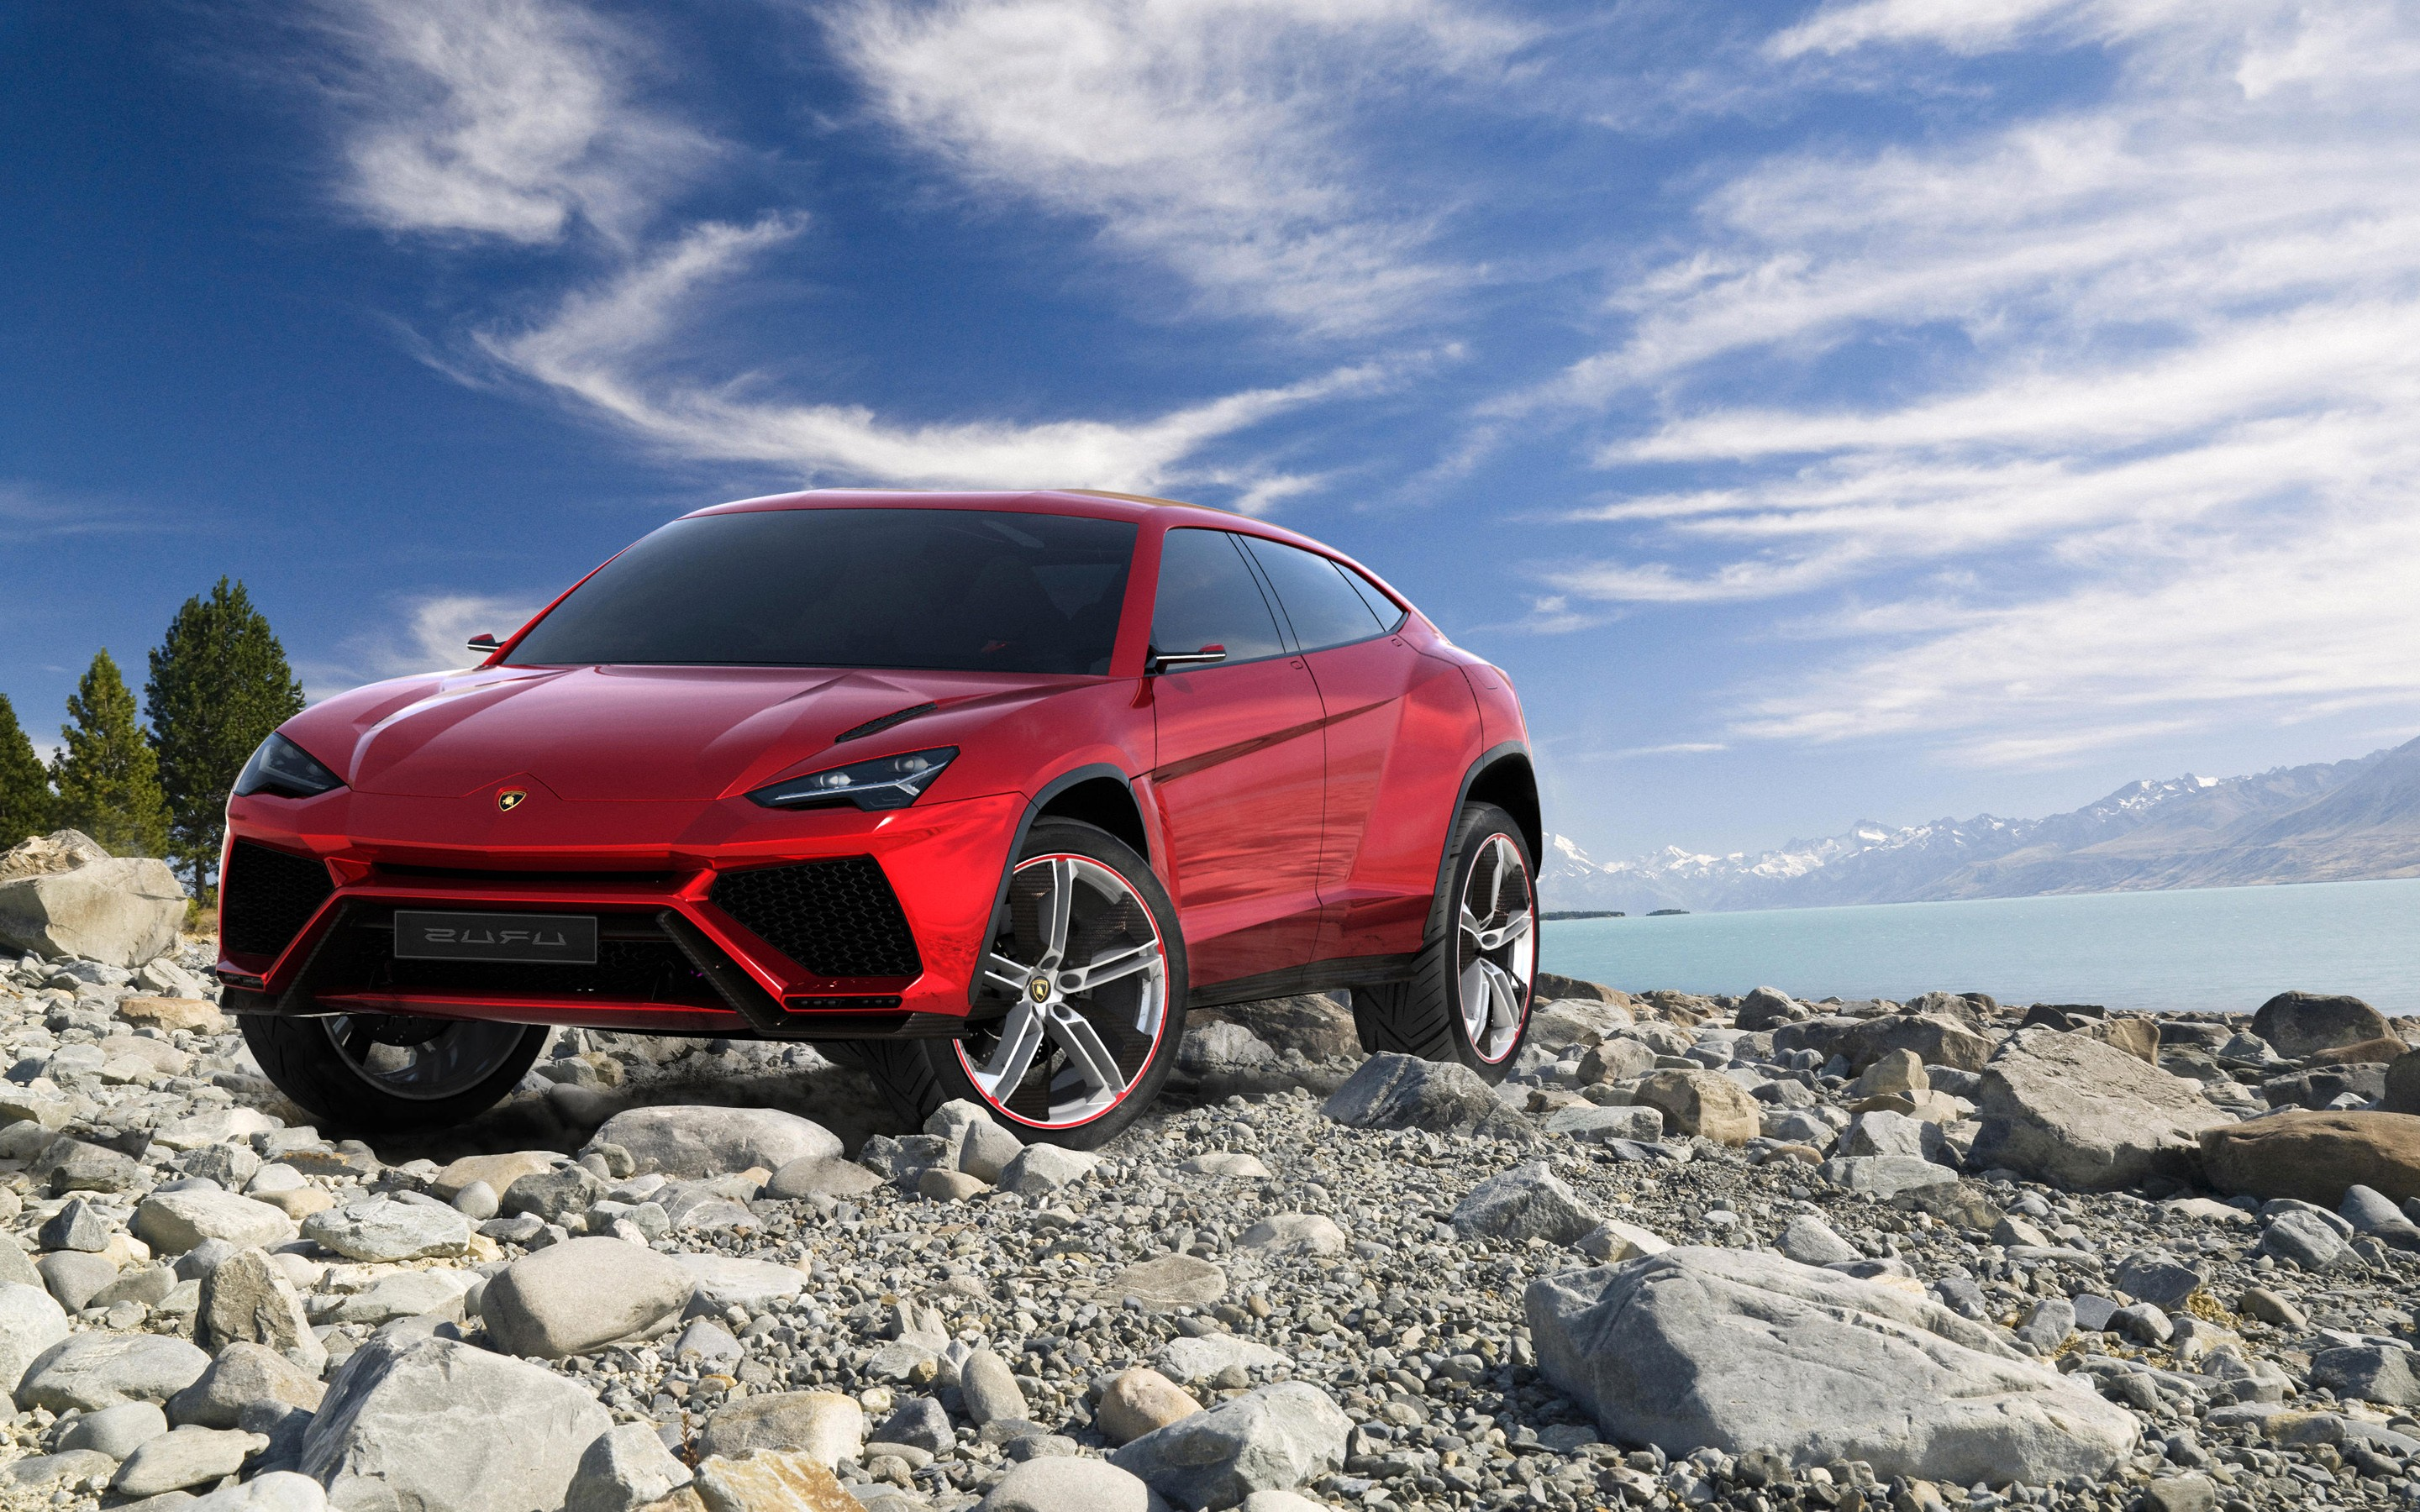 Lamborghini Urus Suv Hd Cars 4k Wallpapers Images Backgrounds